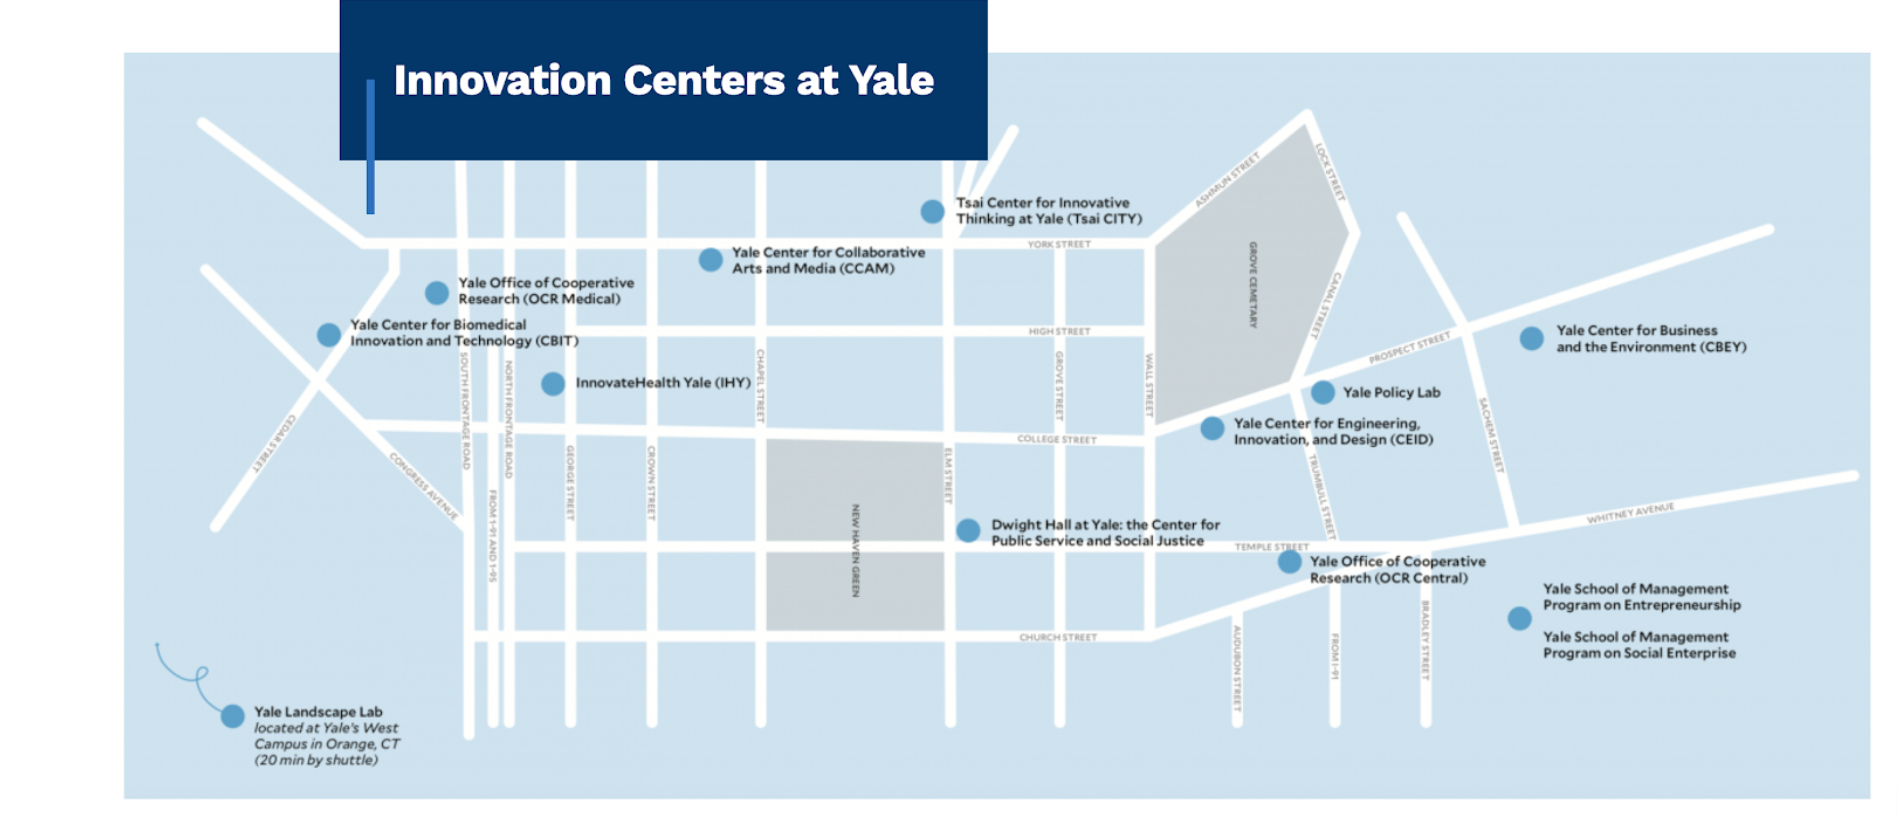 Innovation Centers at Yale